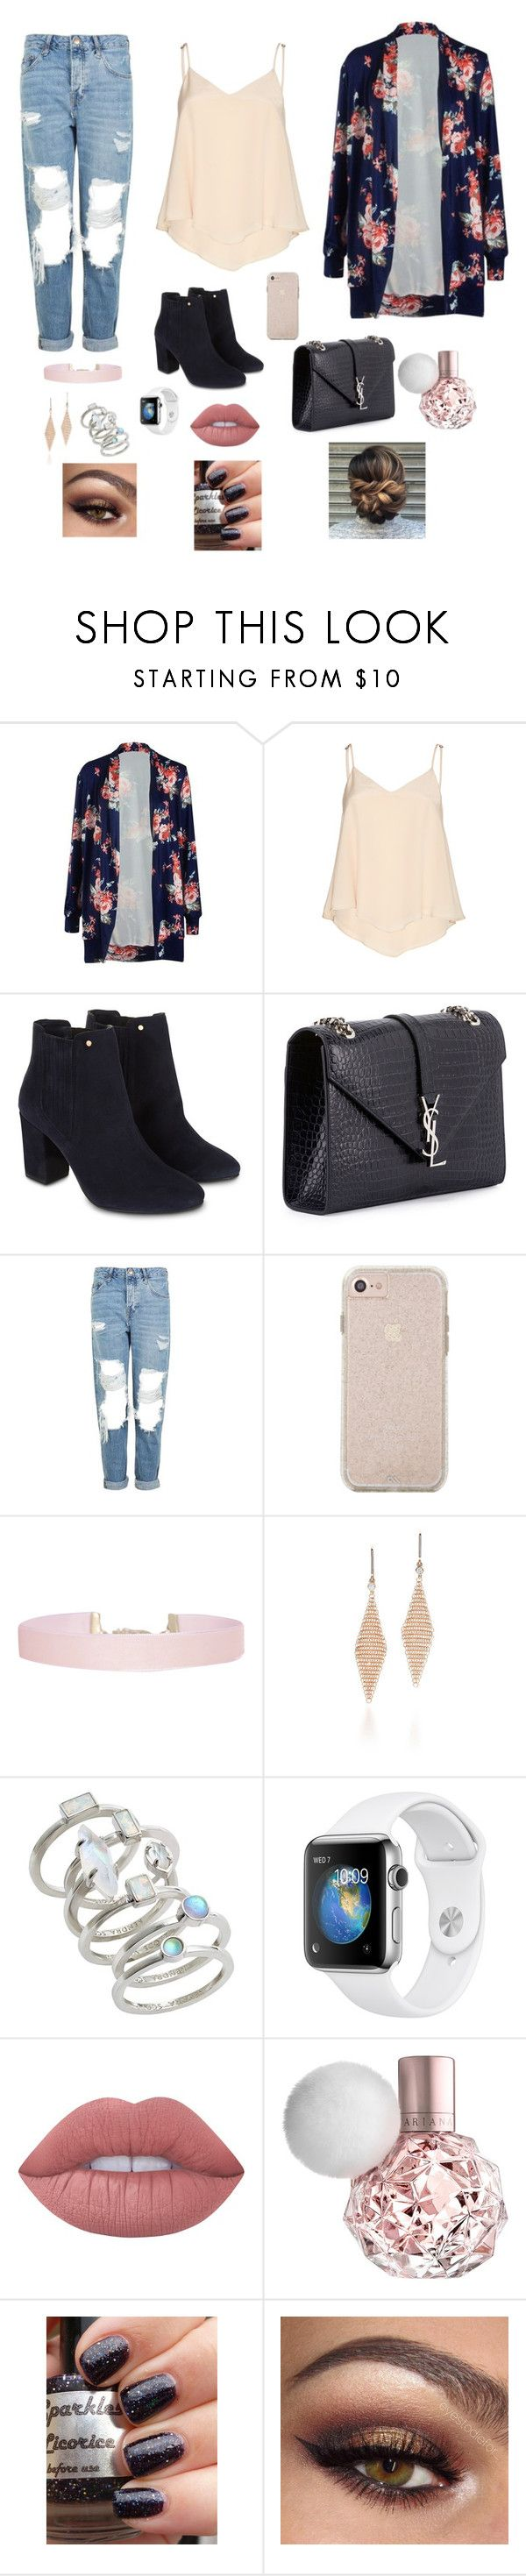 Floral by gabriellaallen on Polyvore featuring Alice + Olivia, Topshop, Monsoon, Yves Saint Laurent, Kendra Scott, Humble Chic, Tiffany & Co. and Lime Crime